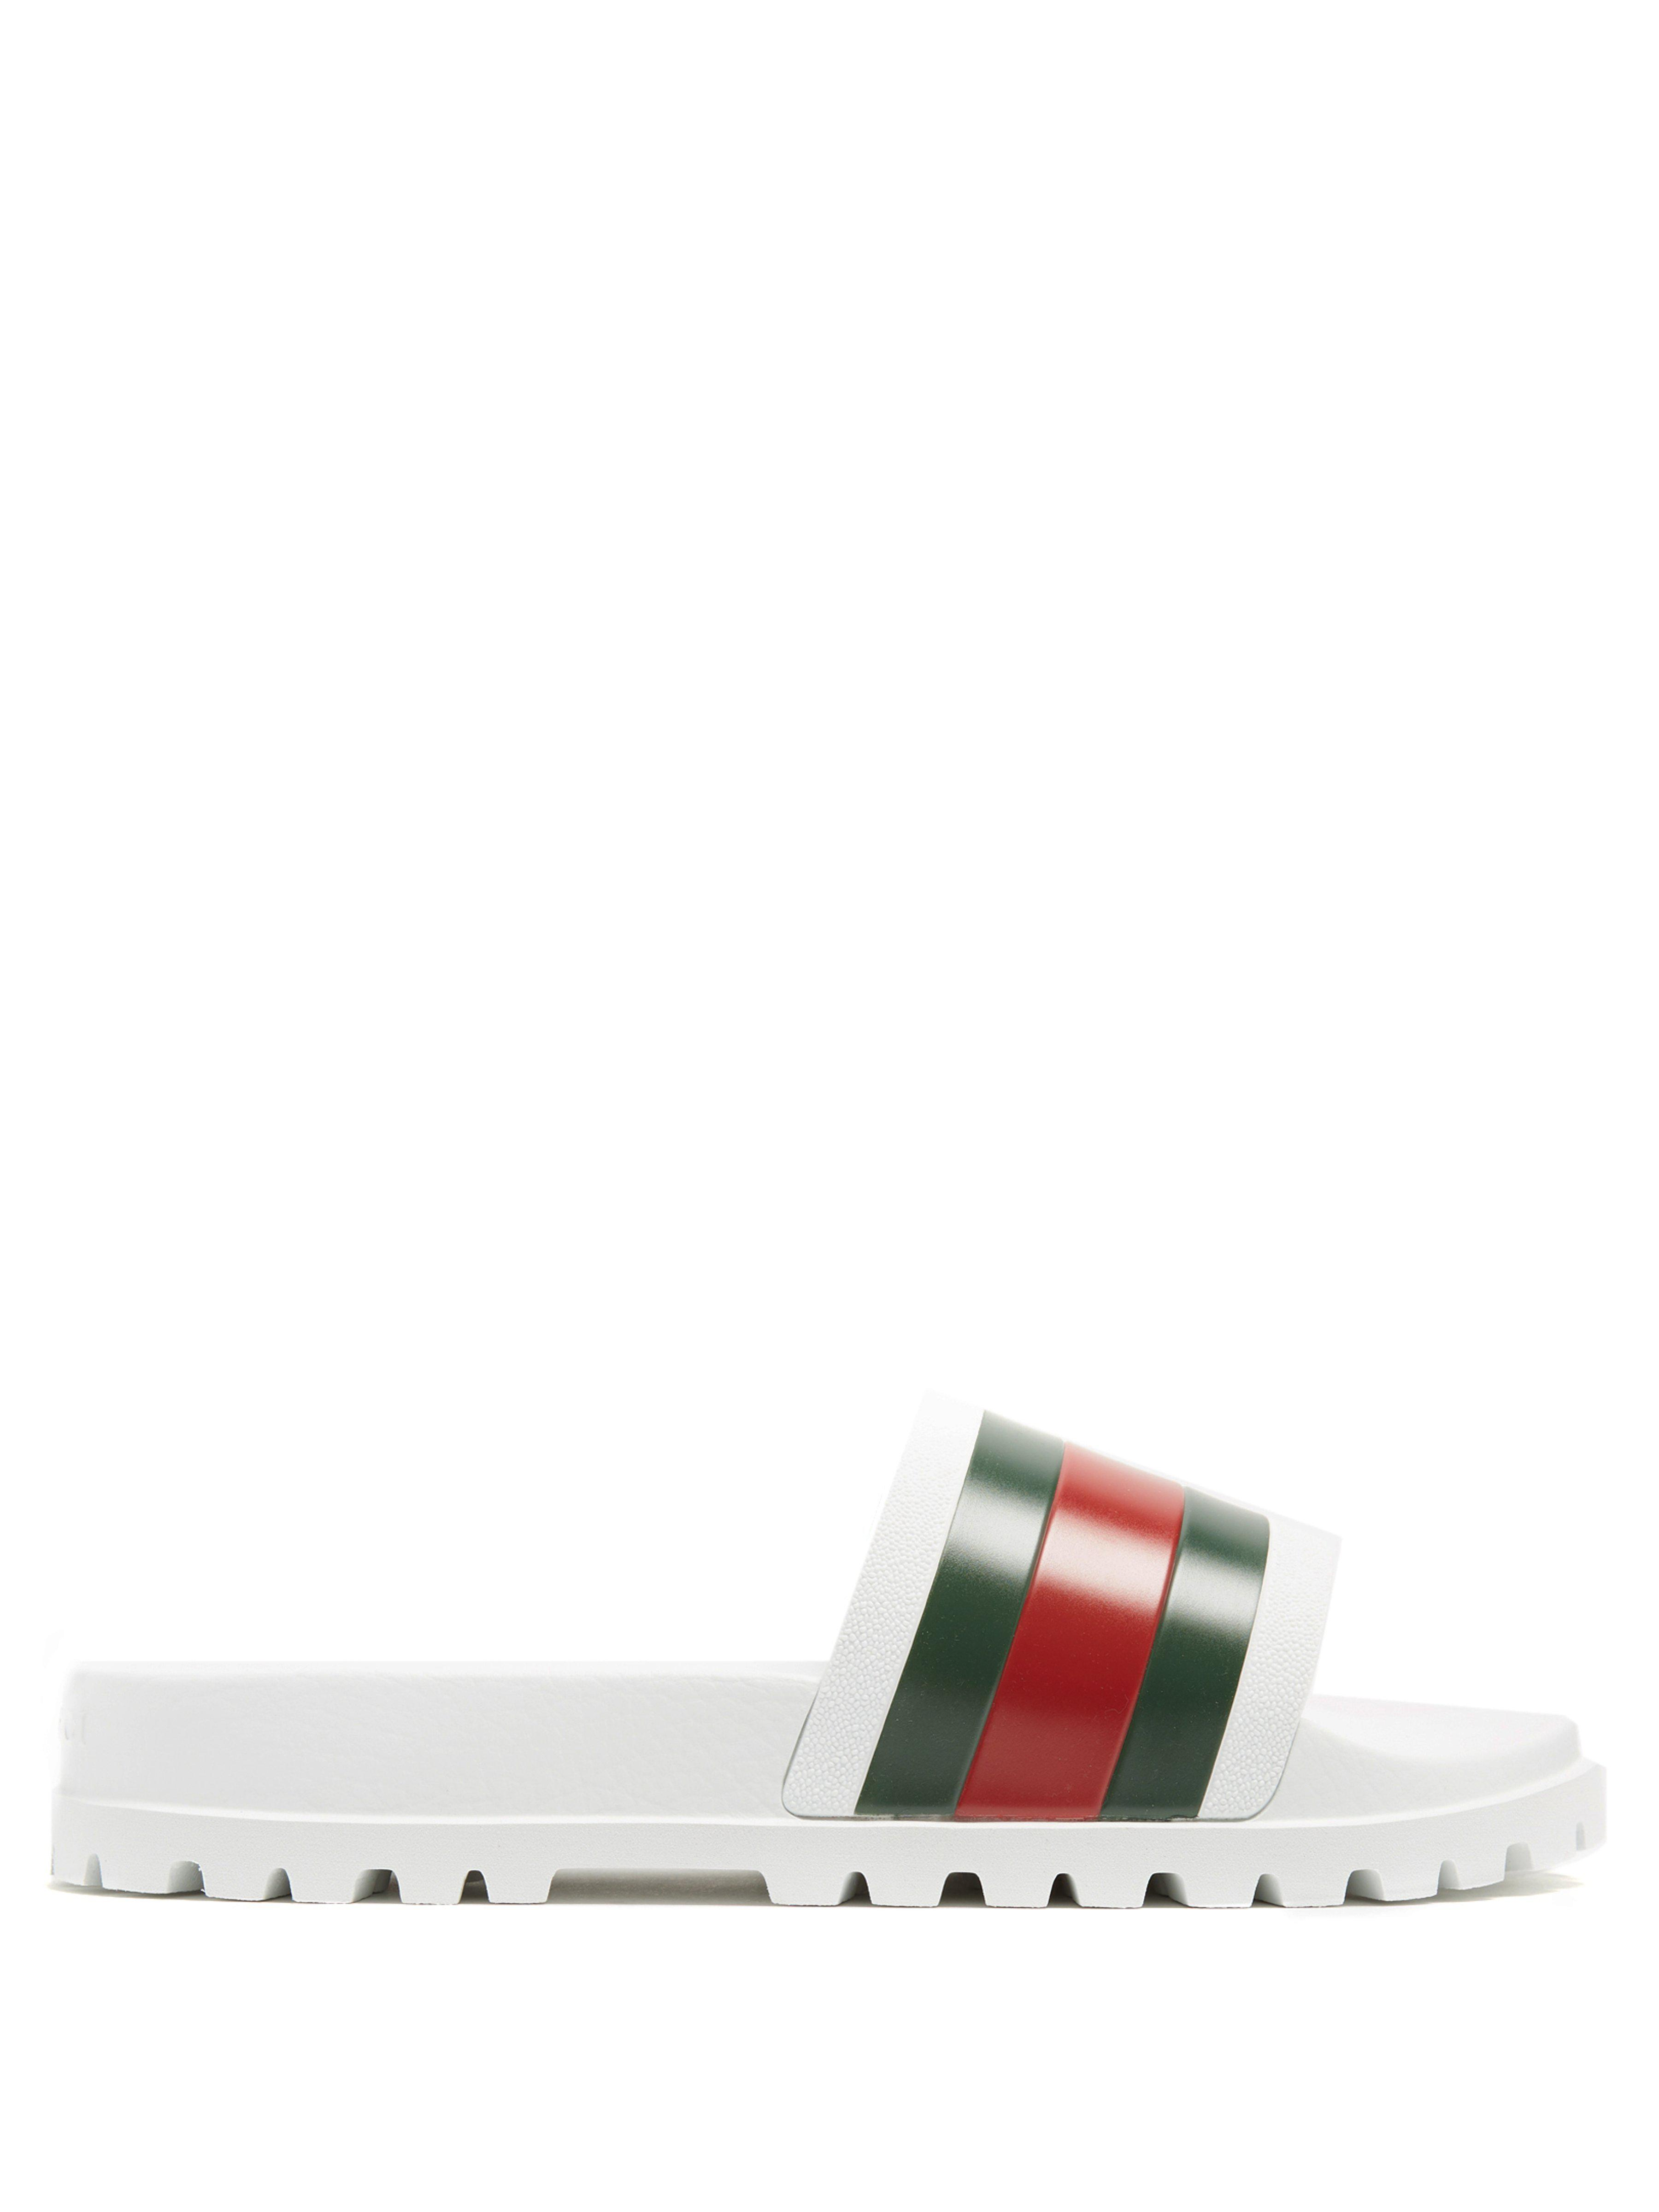 993fc55e93d2ed Gucci Pursuit Web Striped Rubber Pool Slides in White for Men - Lyst